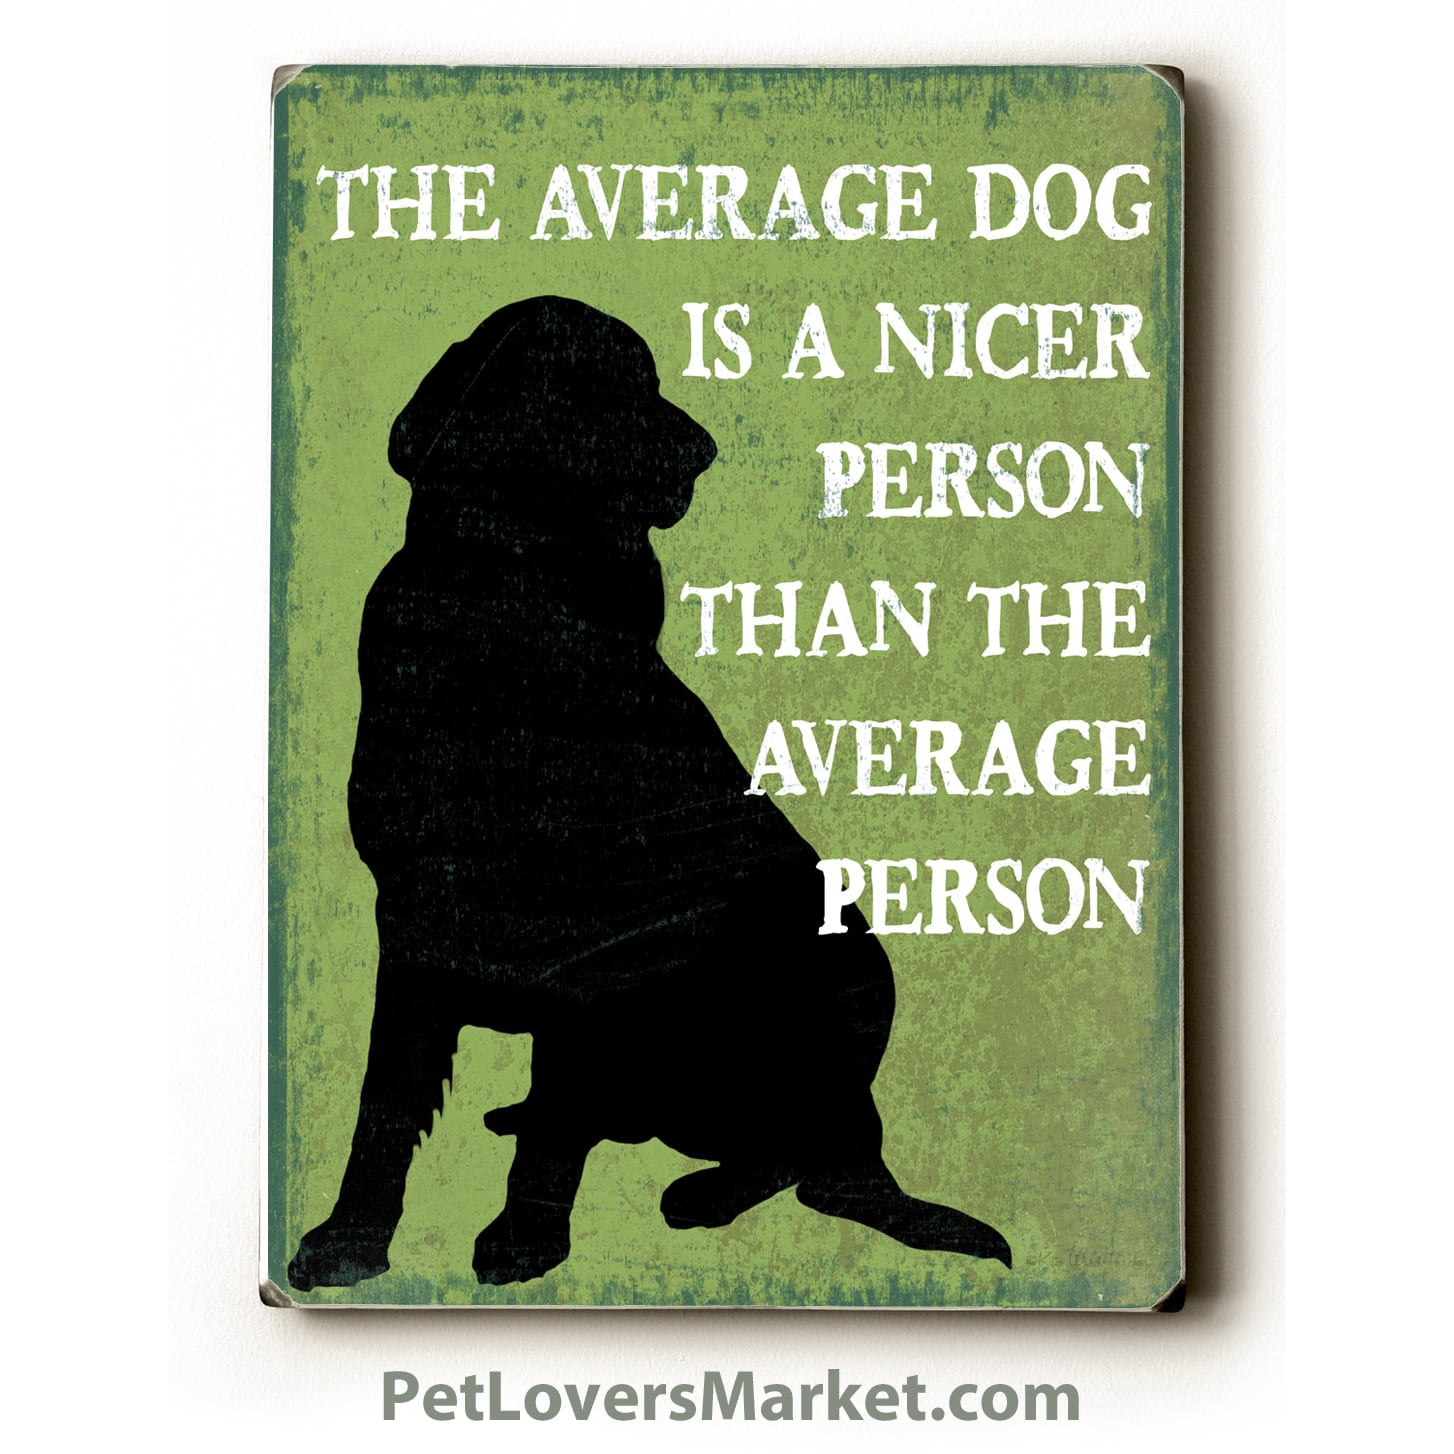 """""""The Average Dog is a Nicer Person than the Average Person."""" Funny Dog Signs with Funny Dog Quotes. Gifts for Dog Lovers. Wooden Dog Print Sign."""